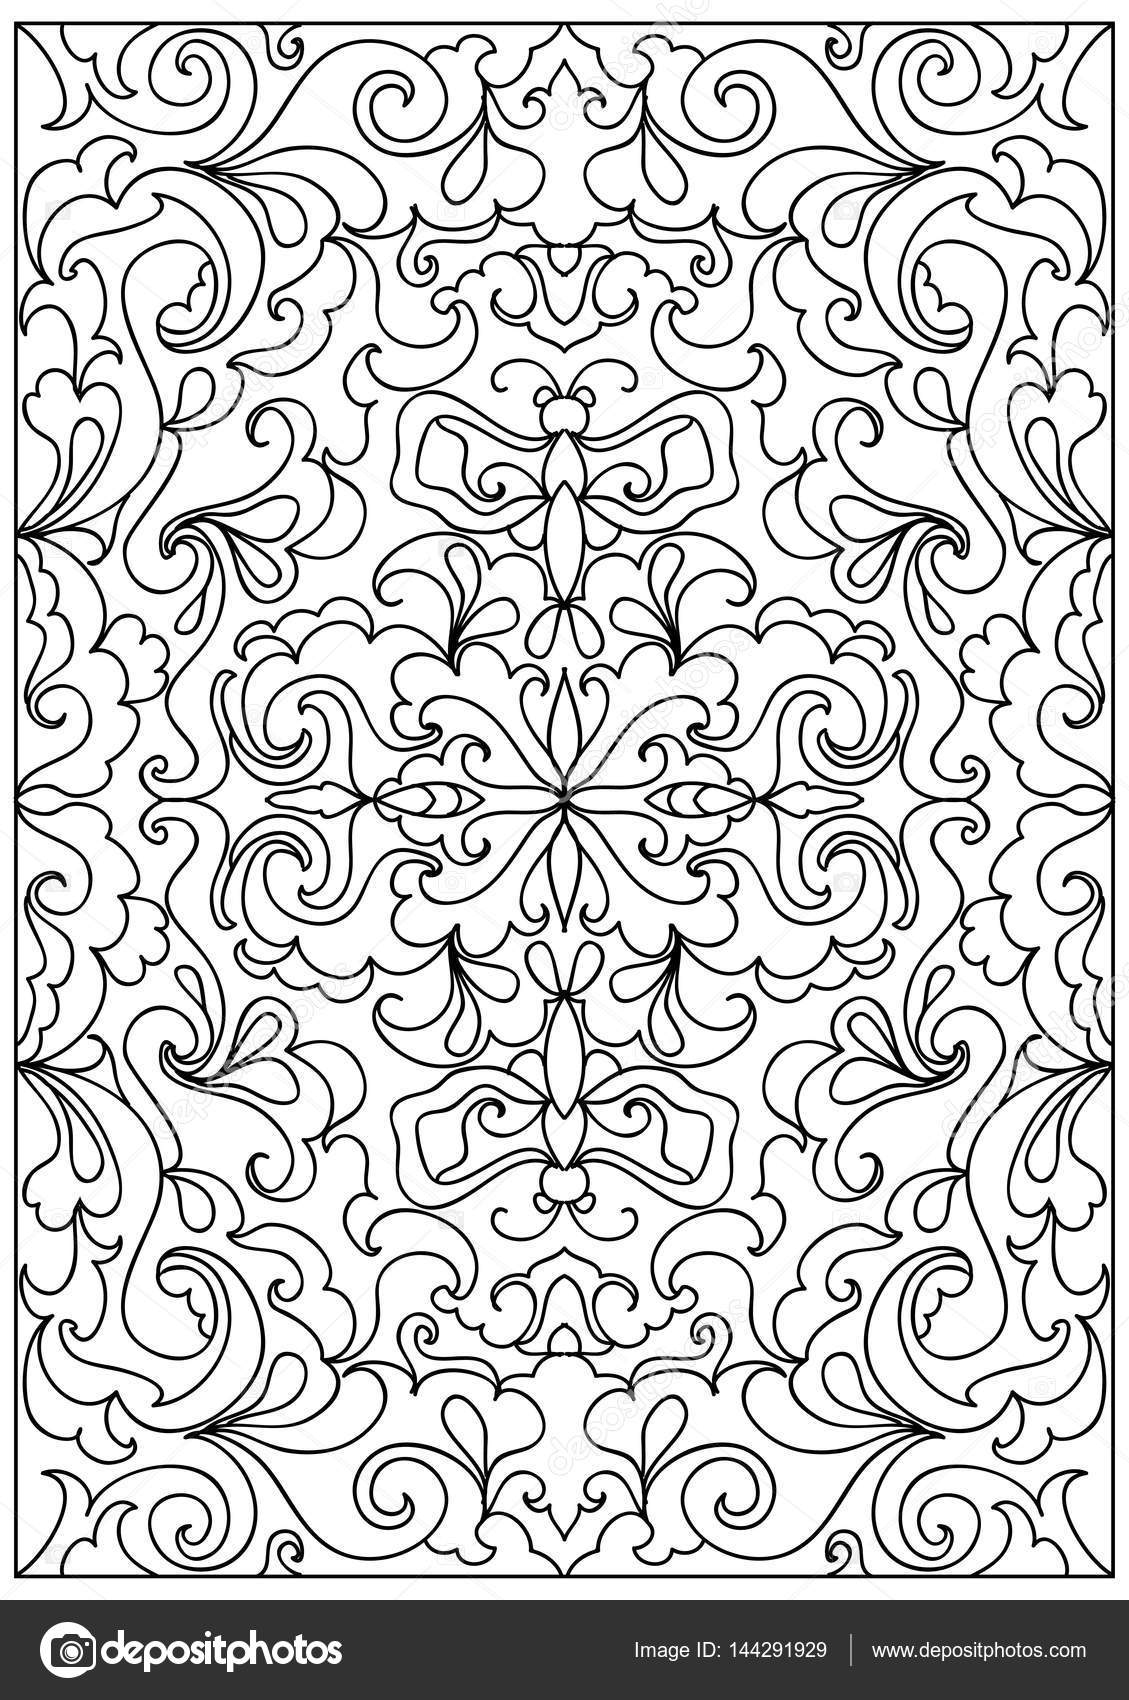 Decorative floral frame coloring page — Stock Vector © Nuarevik ...